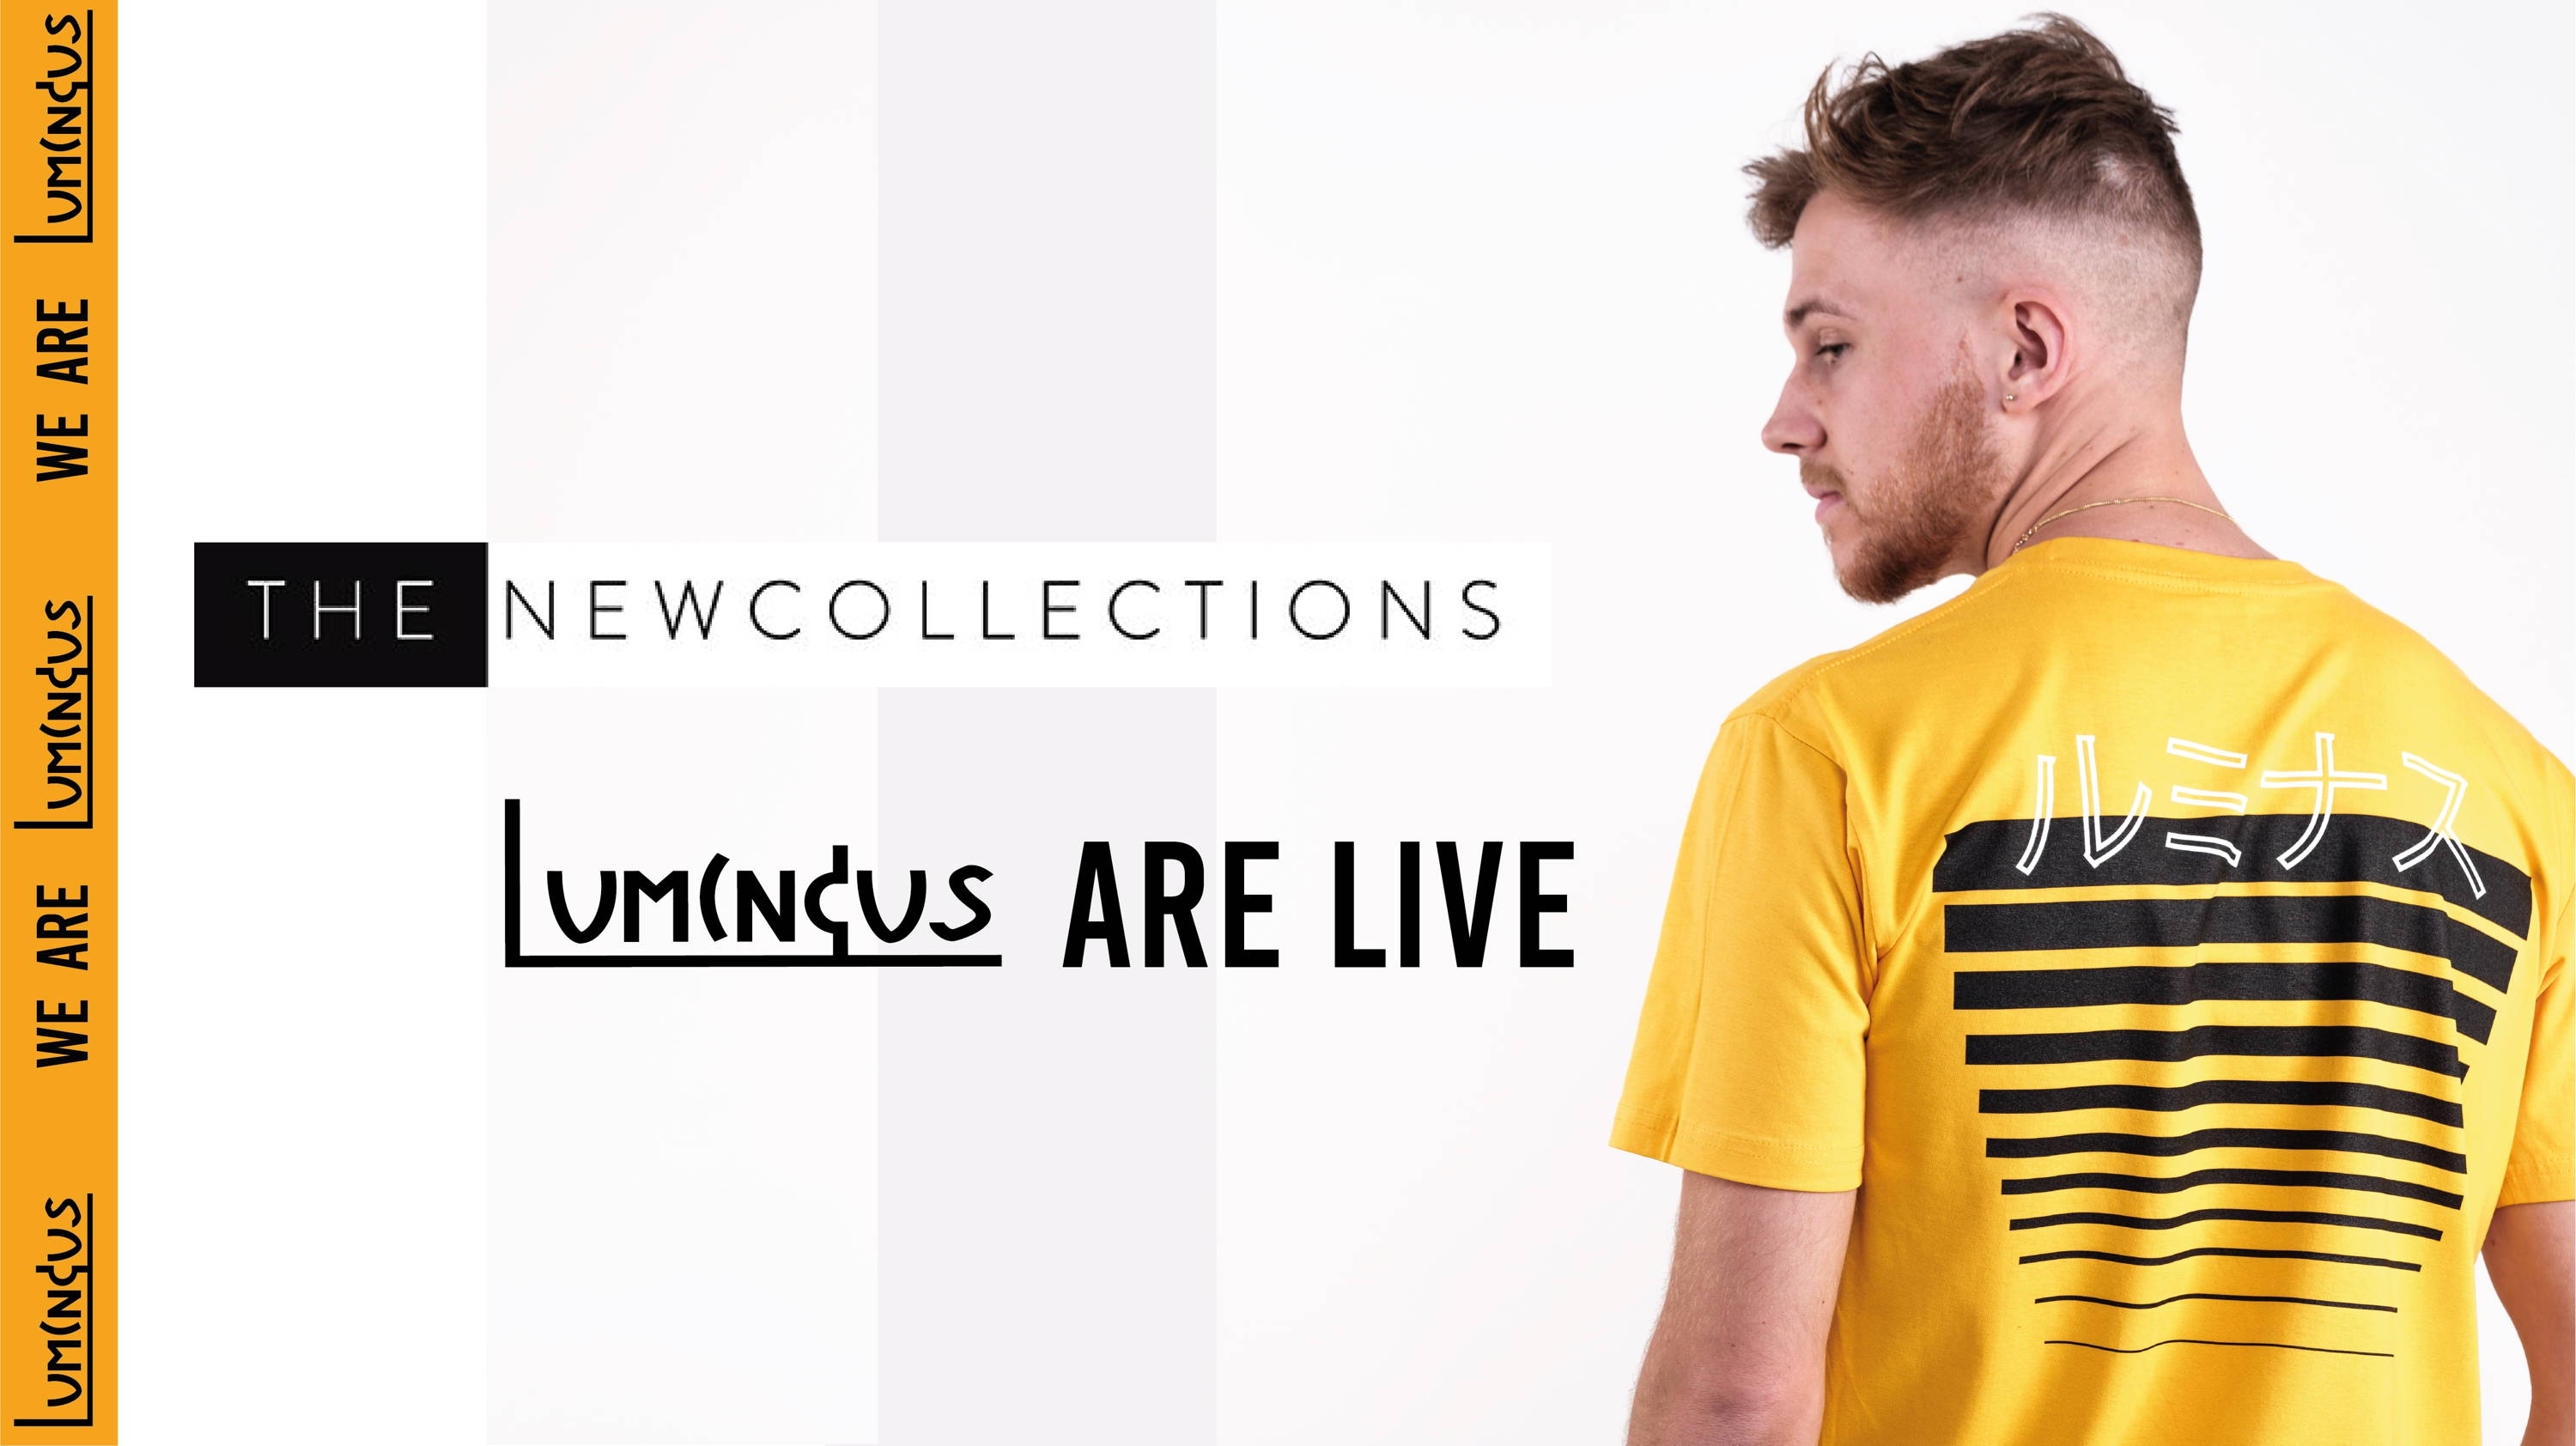 The new collections luminous feature